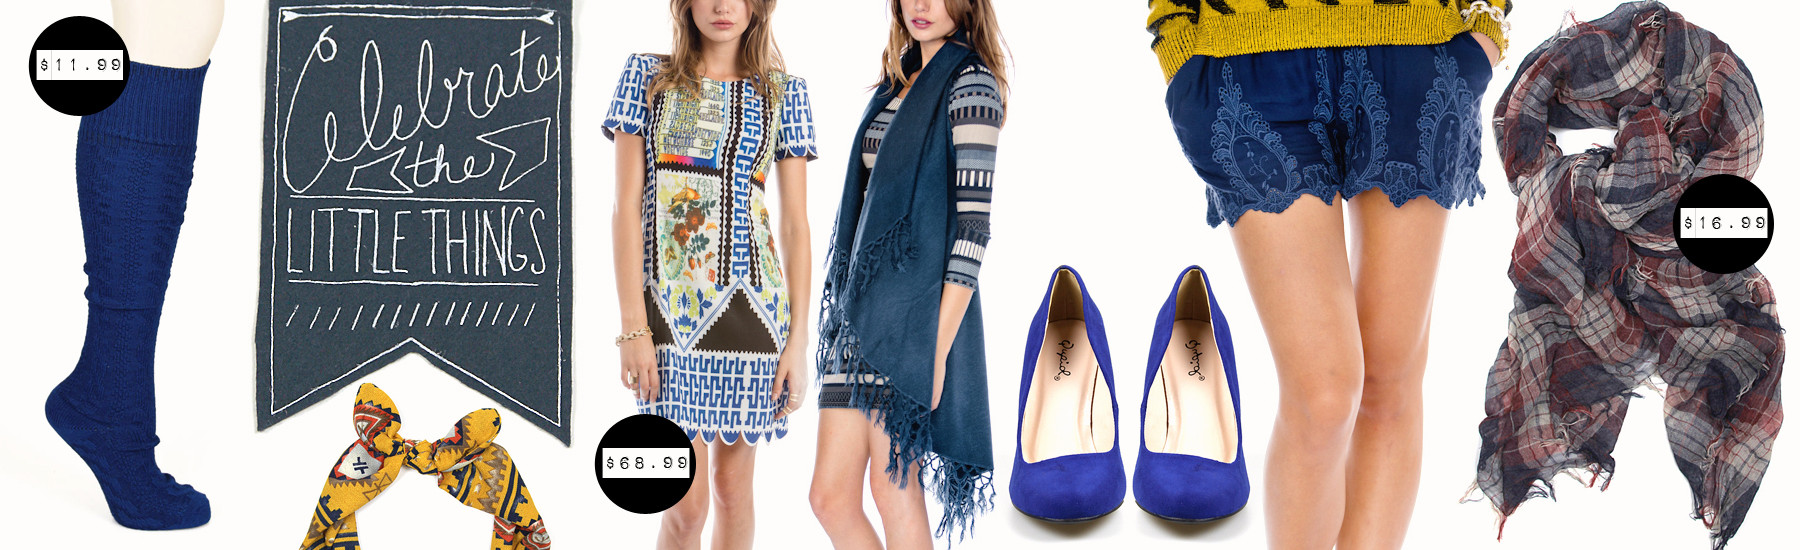 Chic and sweet clothing and accessories for women